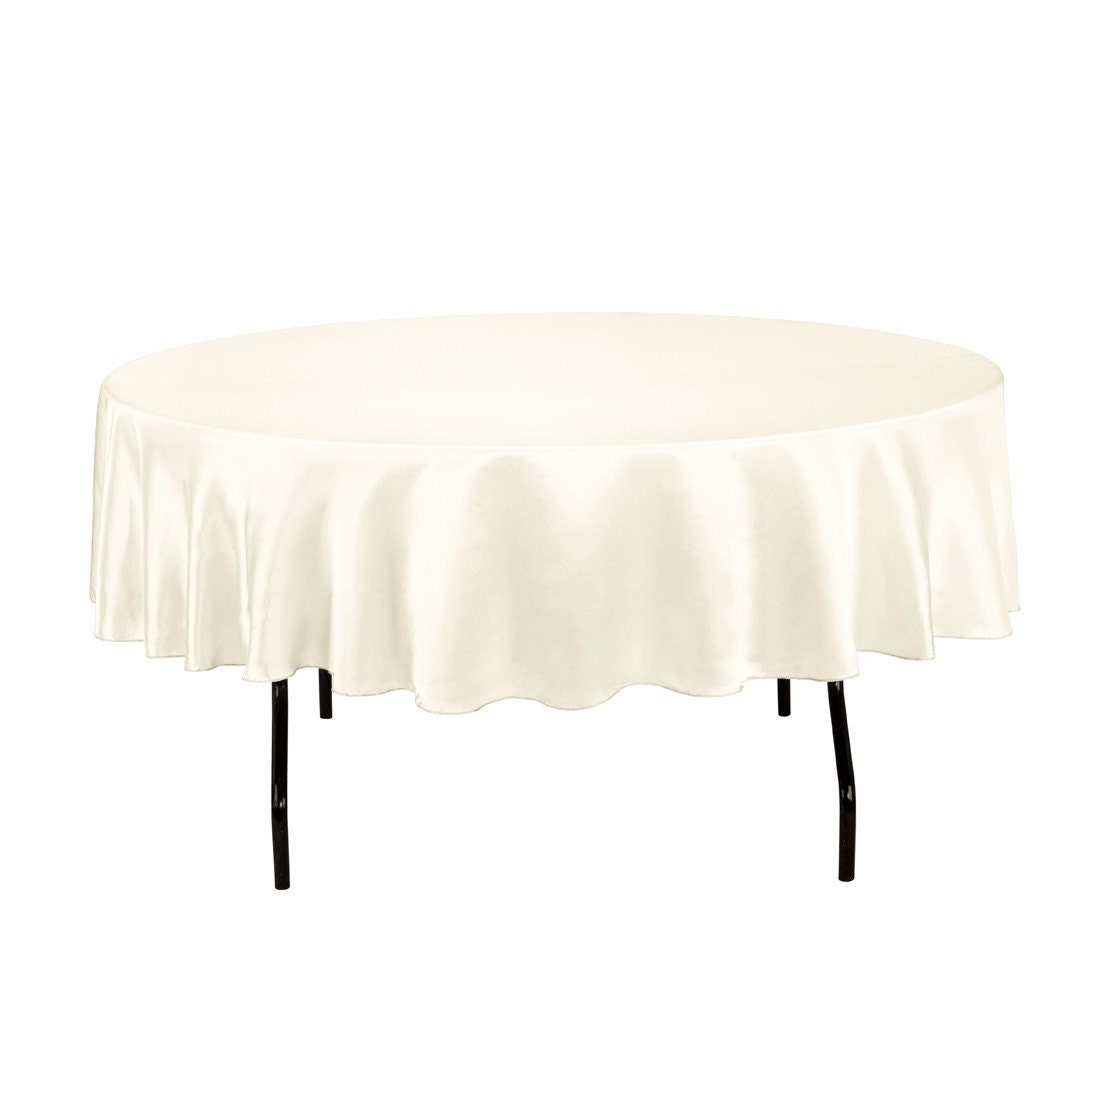 90 Inch Round Ivory Tablecloth Satin Wedding Decorations